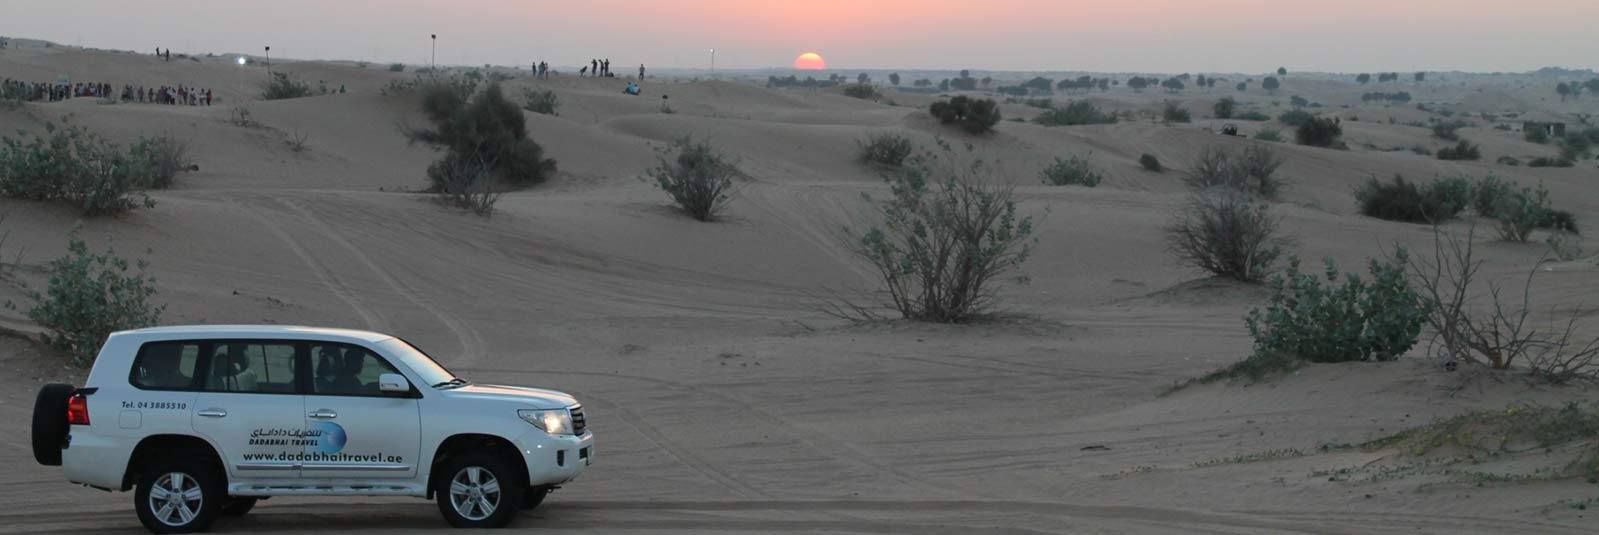 evening-desert-safari.jpg